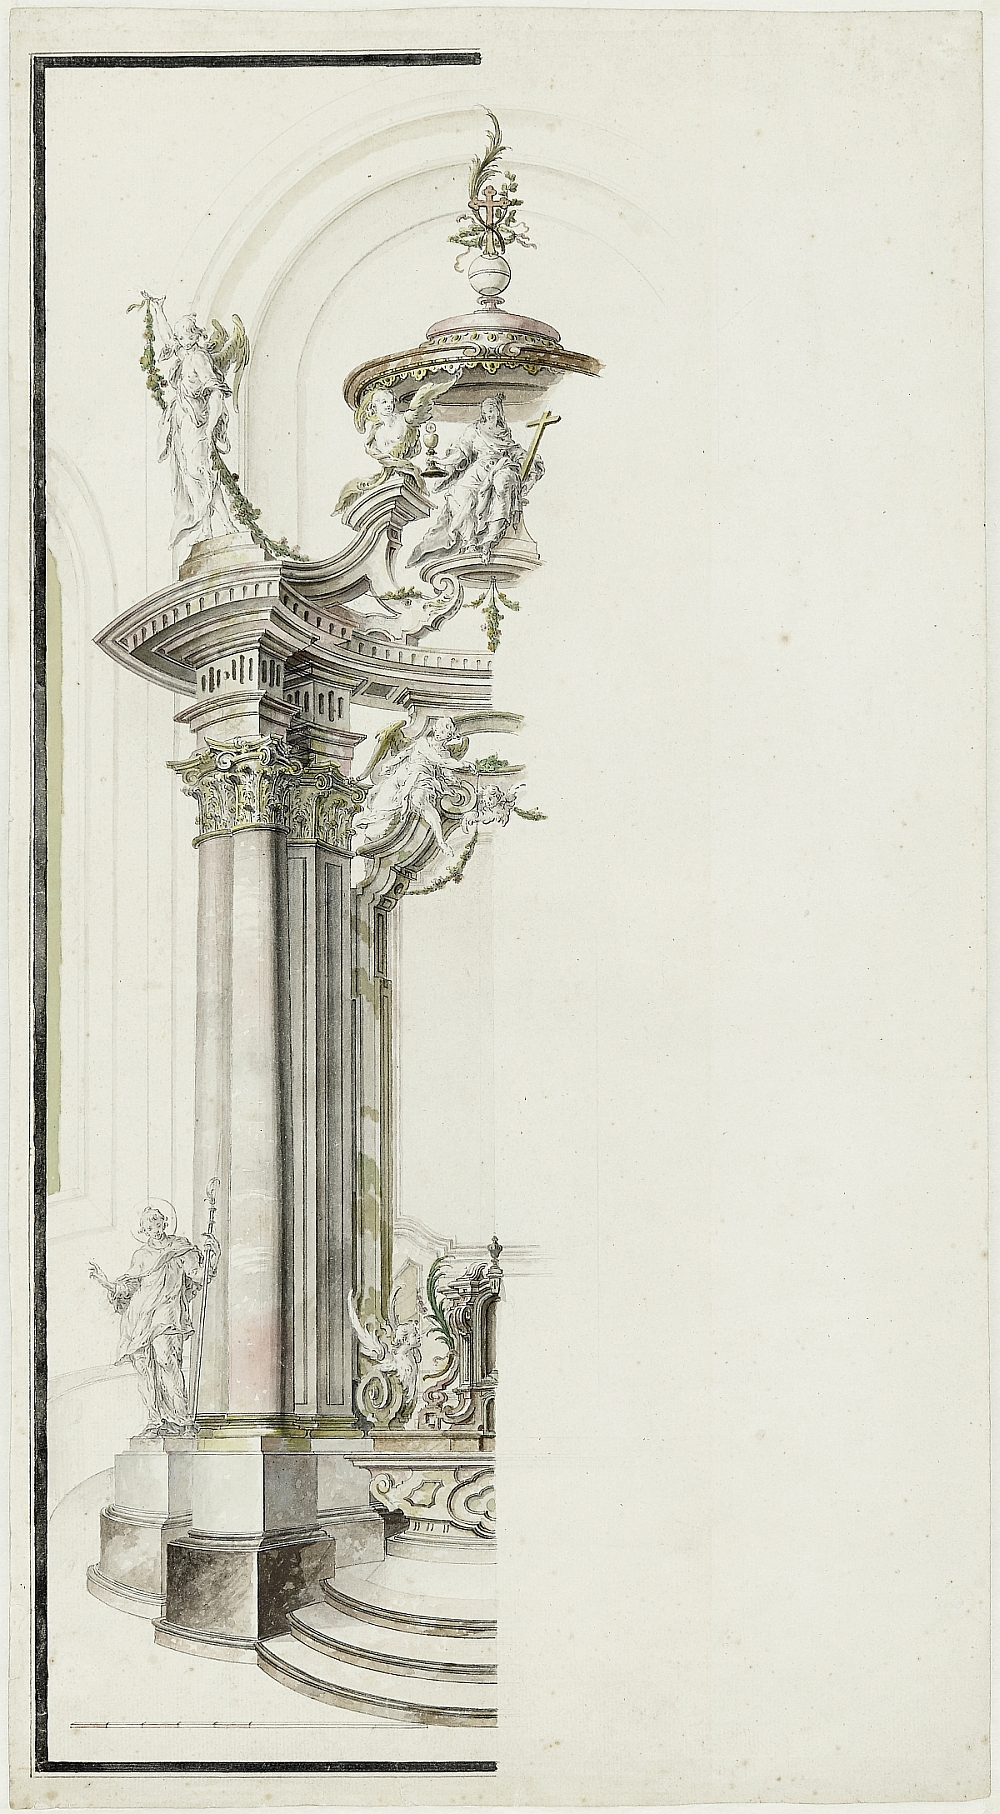 Altar Construction, Joseph Anton Feuchtmayer, Franz Anton Dirr, pen and ink over lead stylus, watercolour, inv. no. RO 1093; no known execution